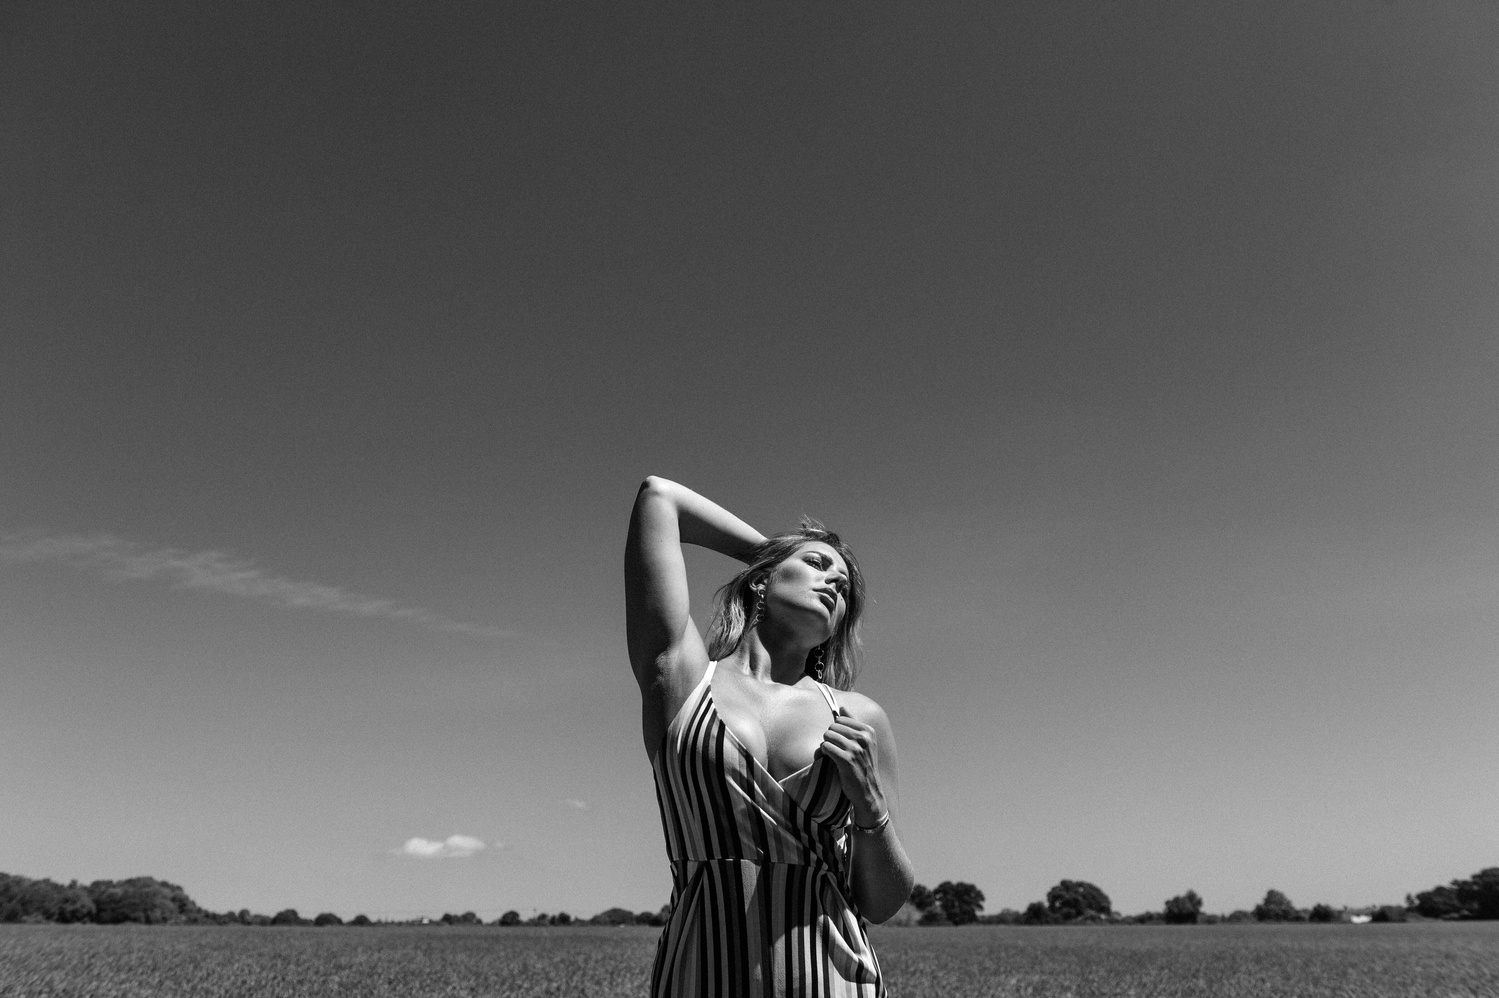 Lisa outdoors by James Bridle